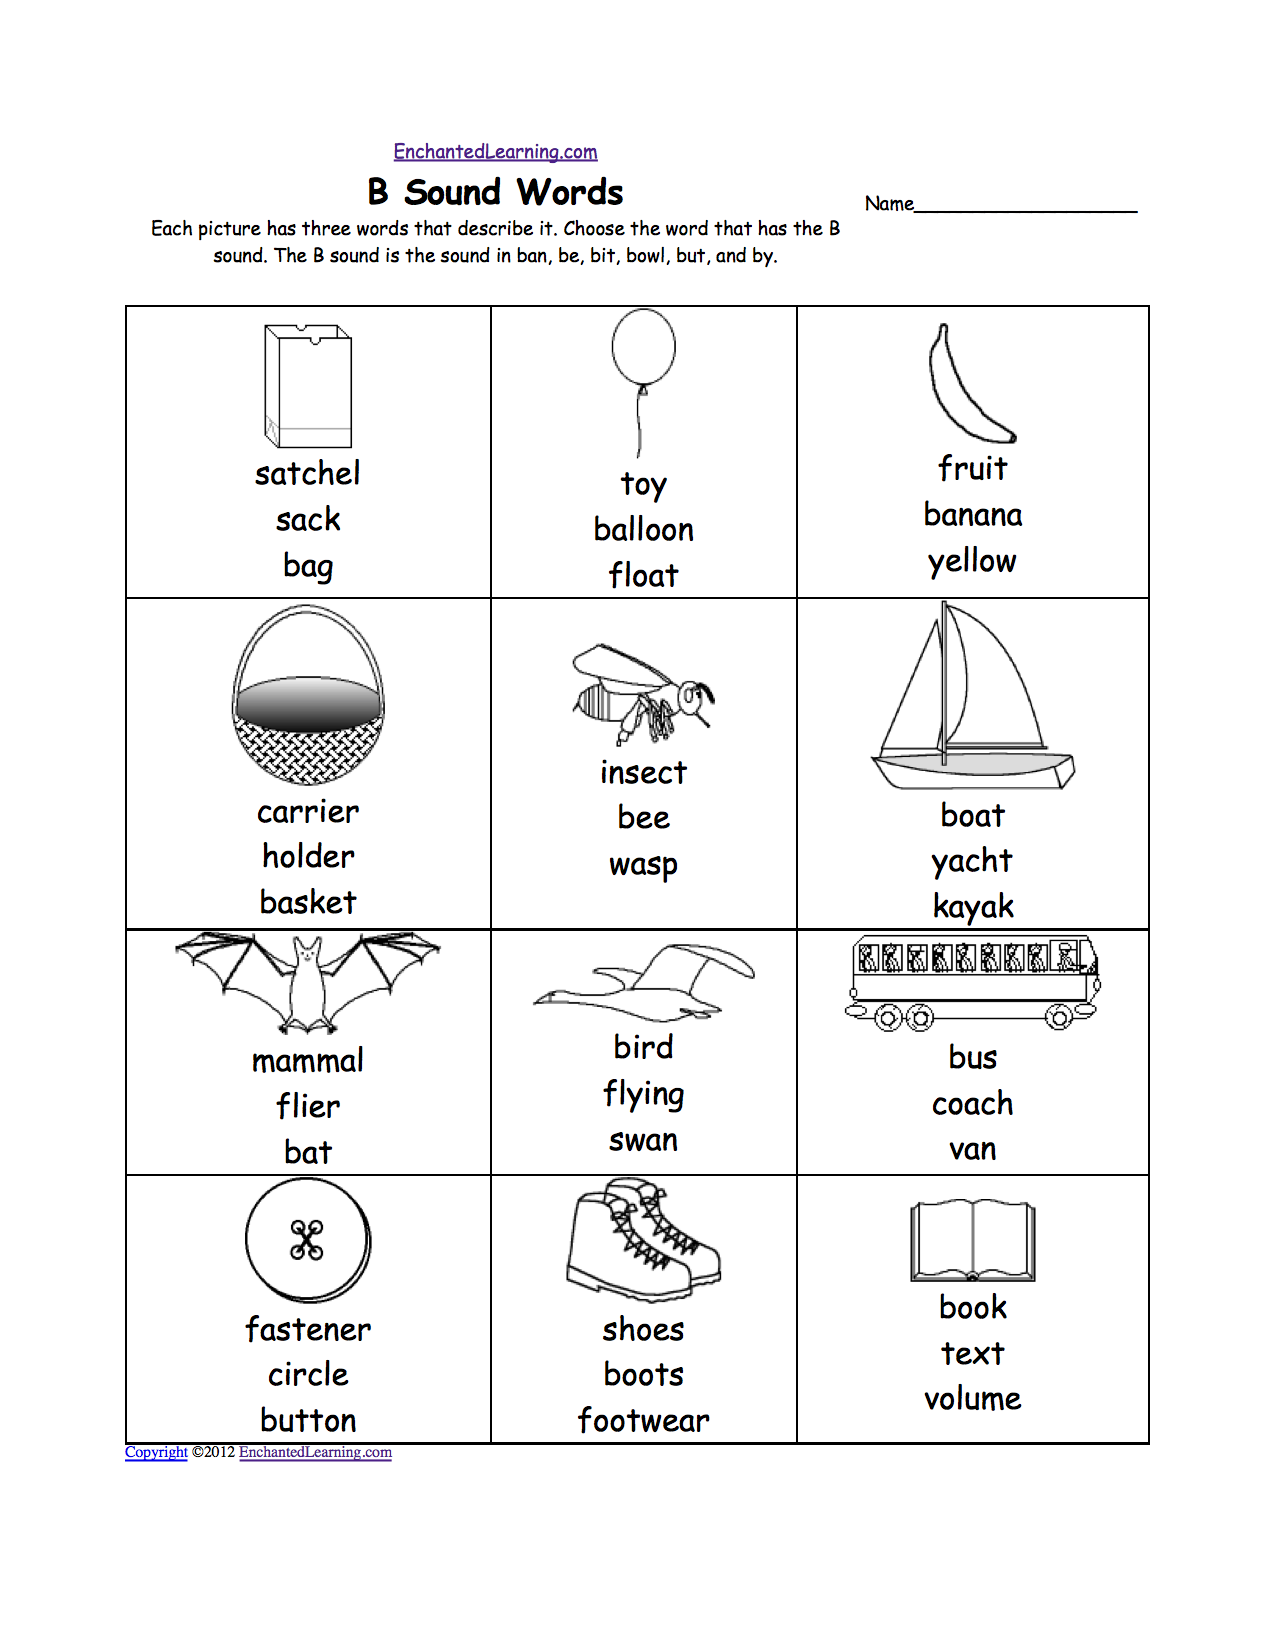 Weirdmailus  Picturesque Phonics Worksheets Multiple Choice Worksheets To Print  With Remarkable Quotbquot Sound Phonics Worksheet Multiple Choice Each Picture Has Three Words That Describe It Choose The Word That Has A Quotbquot Sound The Quotbquot Sound Is The Sound  With Cute Worksheet On Theme Also Long Vowel Worksheets Kindergarten In Addition  And  Times Tables Worksheets And Preschool Number  Worksheets As Well As Visual Discrimination Worksheet Additionally Senses Worksheets From Enchantedlearningcom With Weirdmailus  Remarkable Phonics Worksheets Multiple Choice Worksheets To Print  With Cute Quotbquot Sound Phonics Worksheet Multiple Choice Each Picture Has Three Words That Describe It Choose The Word That Has A Quotbquot Sound The Quotbquot Sound Is The Sound  And Picturesque Worksheet On Theme Also Long Vowel Worksheets Kindergarten In Addition  And  Times Tables Worksheets From Enchantedlearningcom